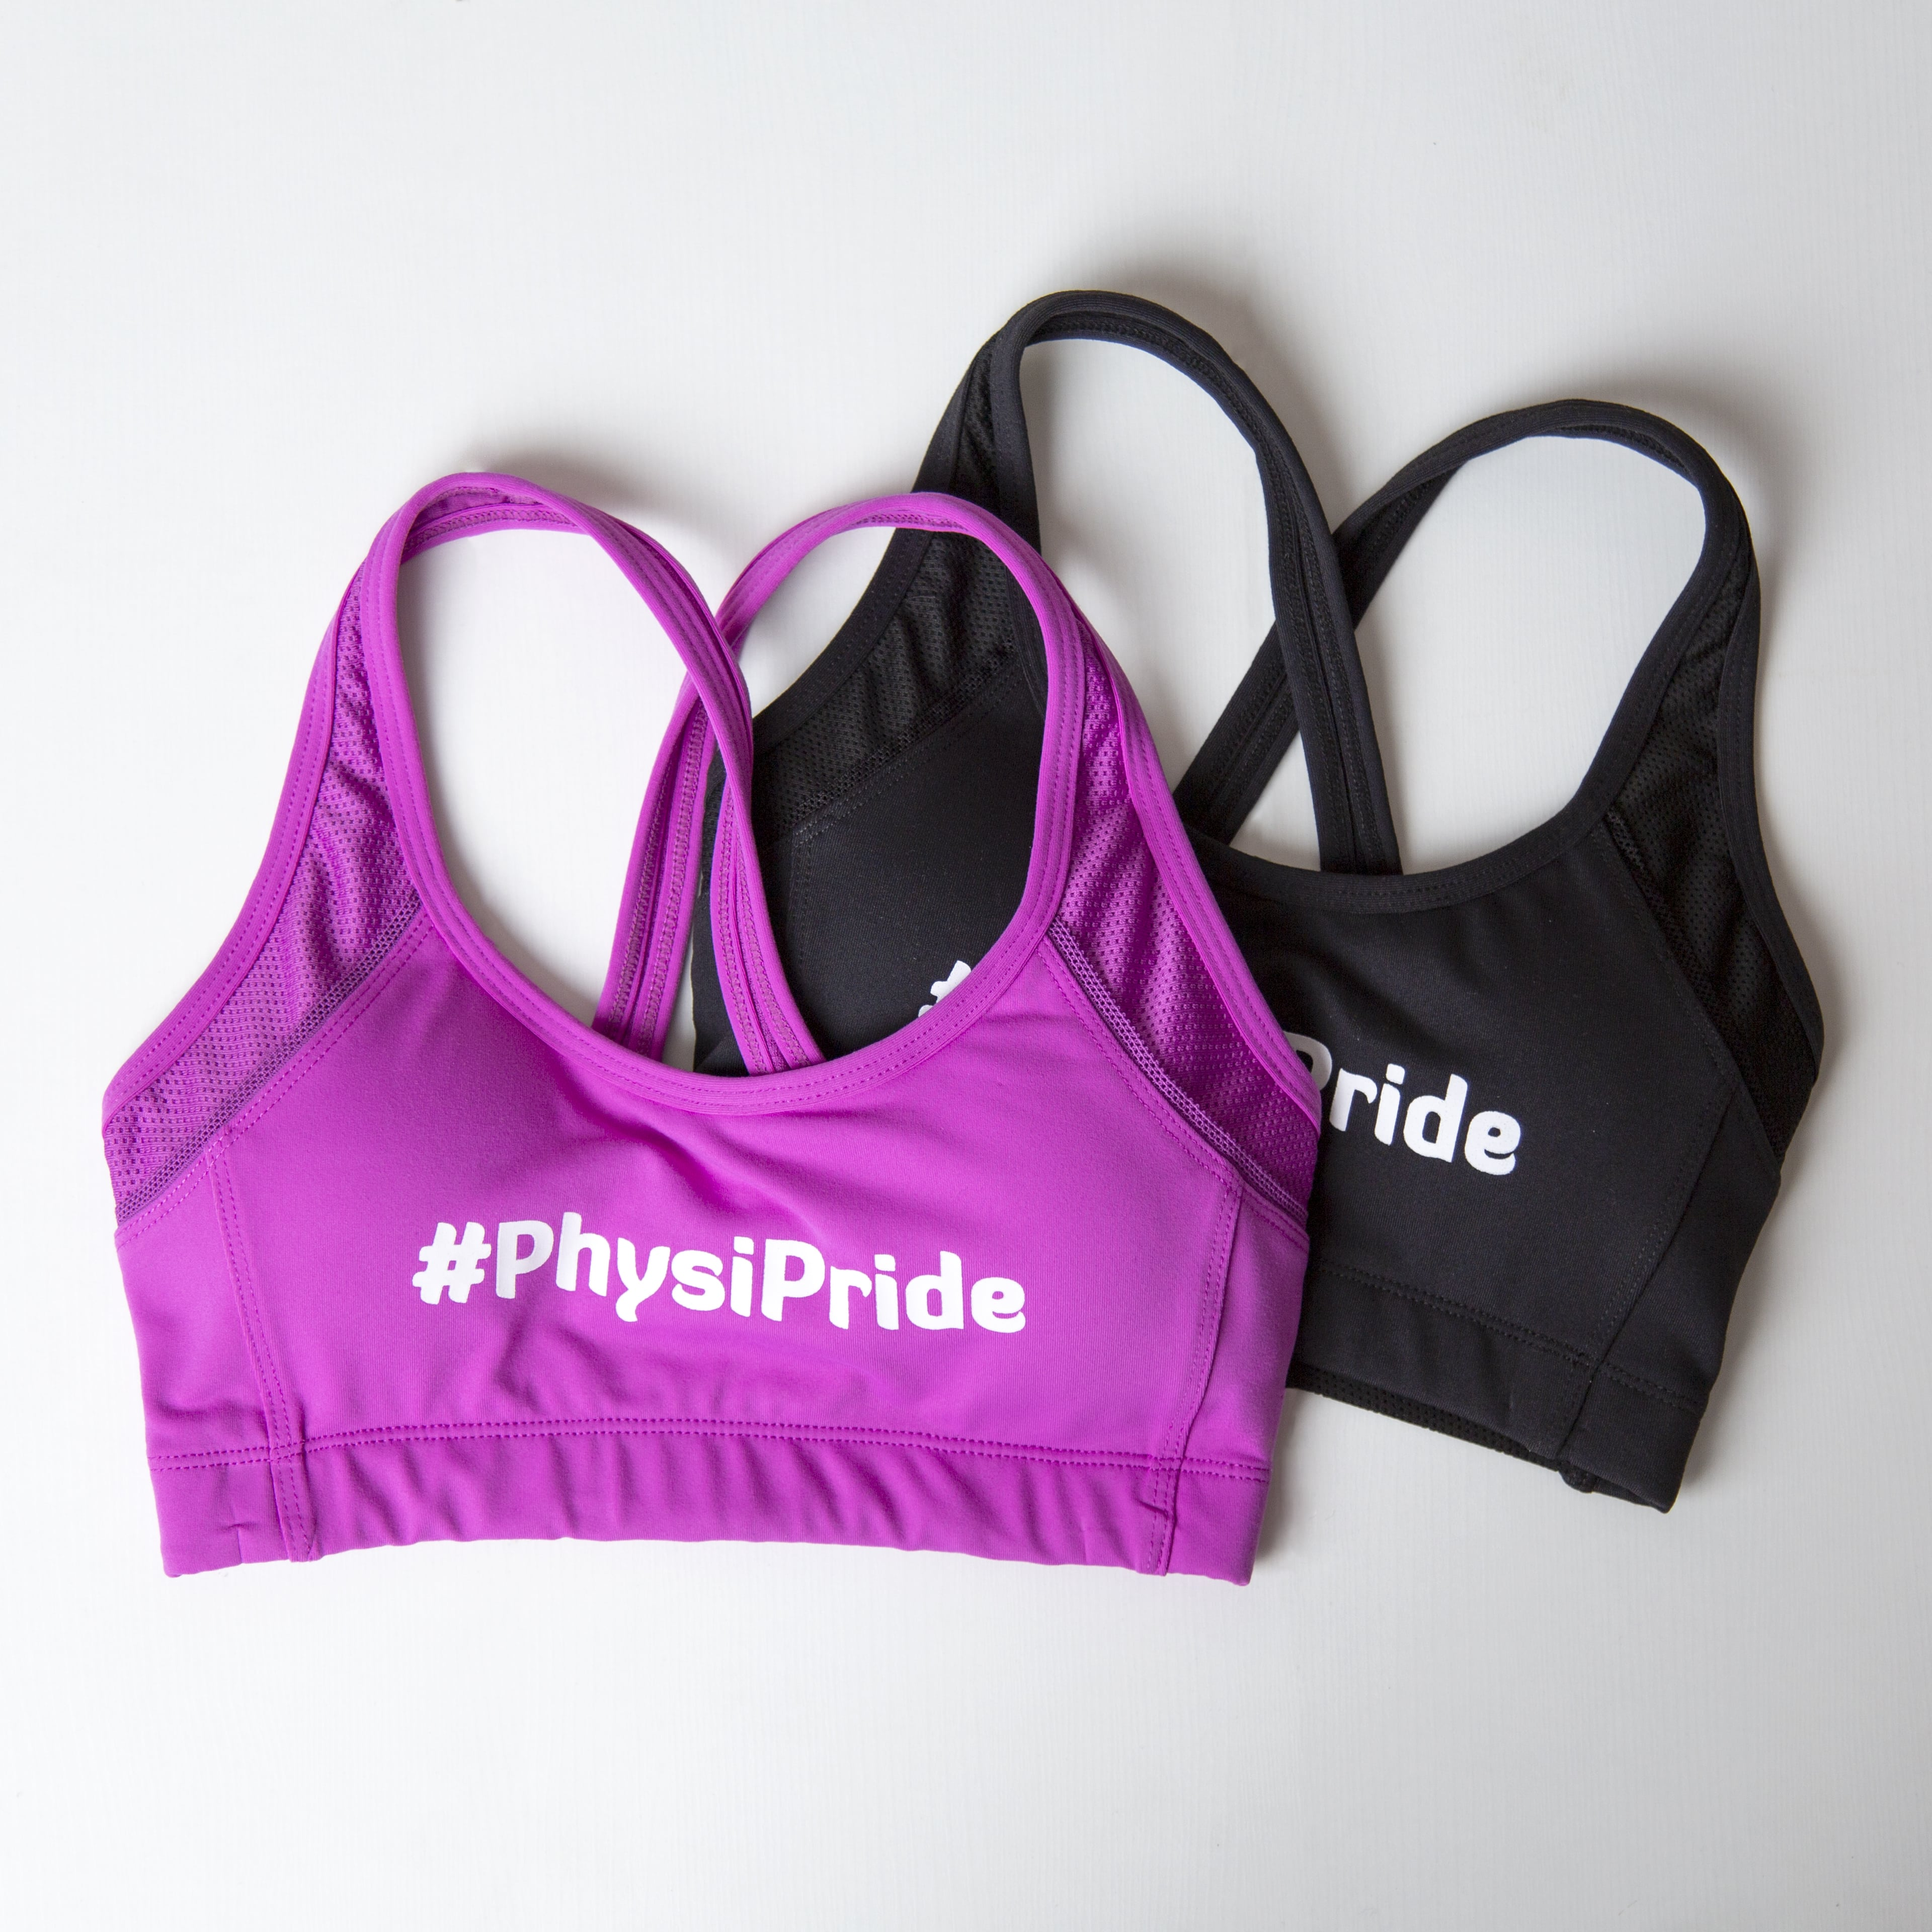 PhysiPride Crop